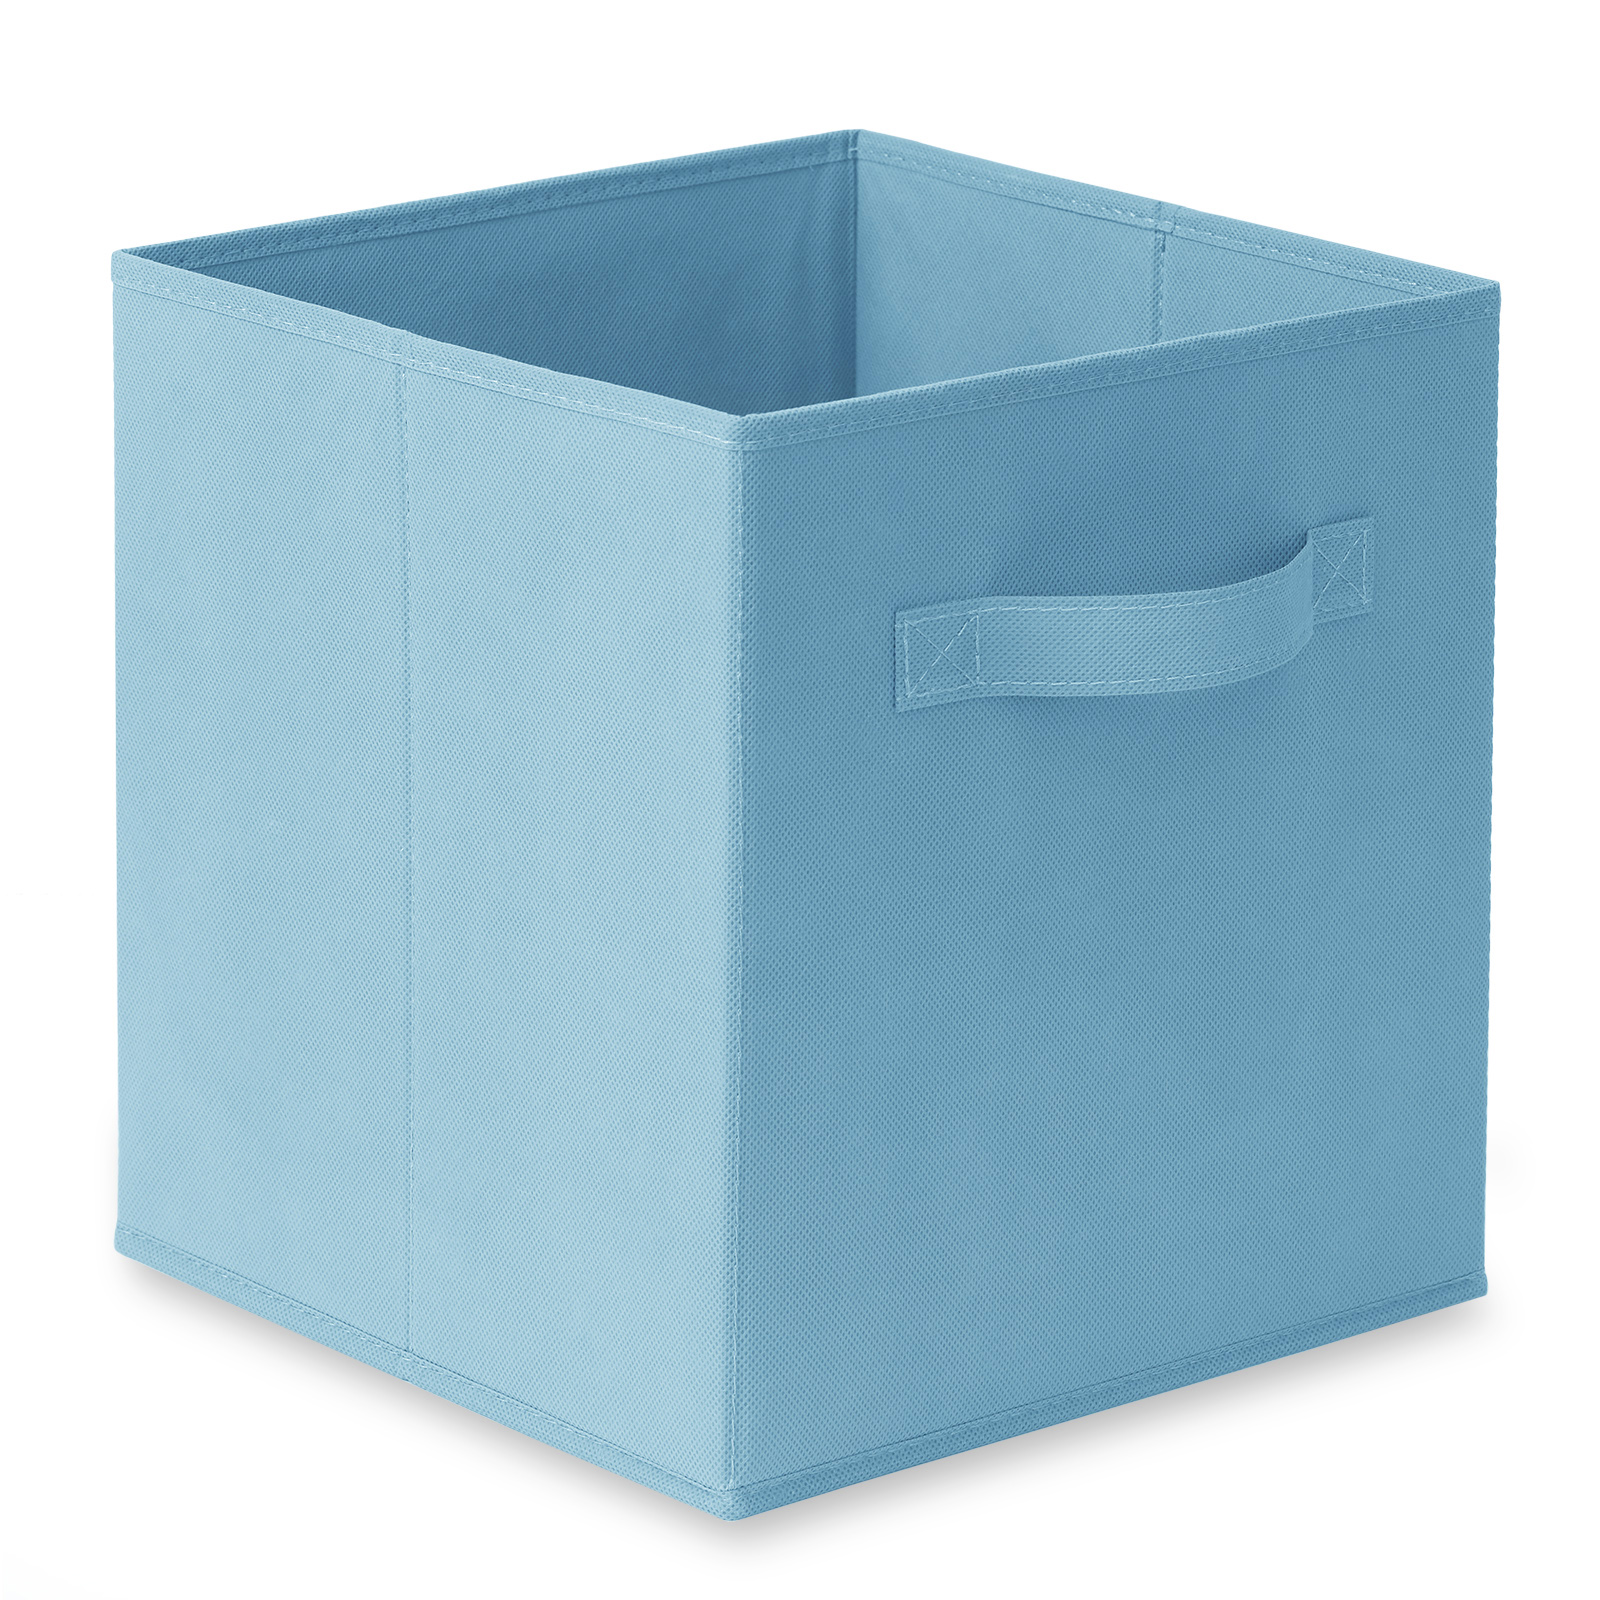 6-Collapsible-Foldable-Cloth-Fabric-Cubby-Cube-Storage-Bins-Baskets-for-Shelves thumbnail 3